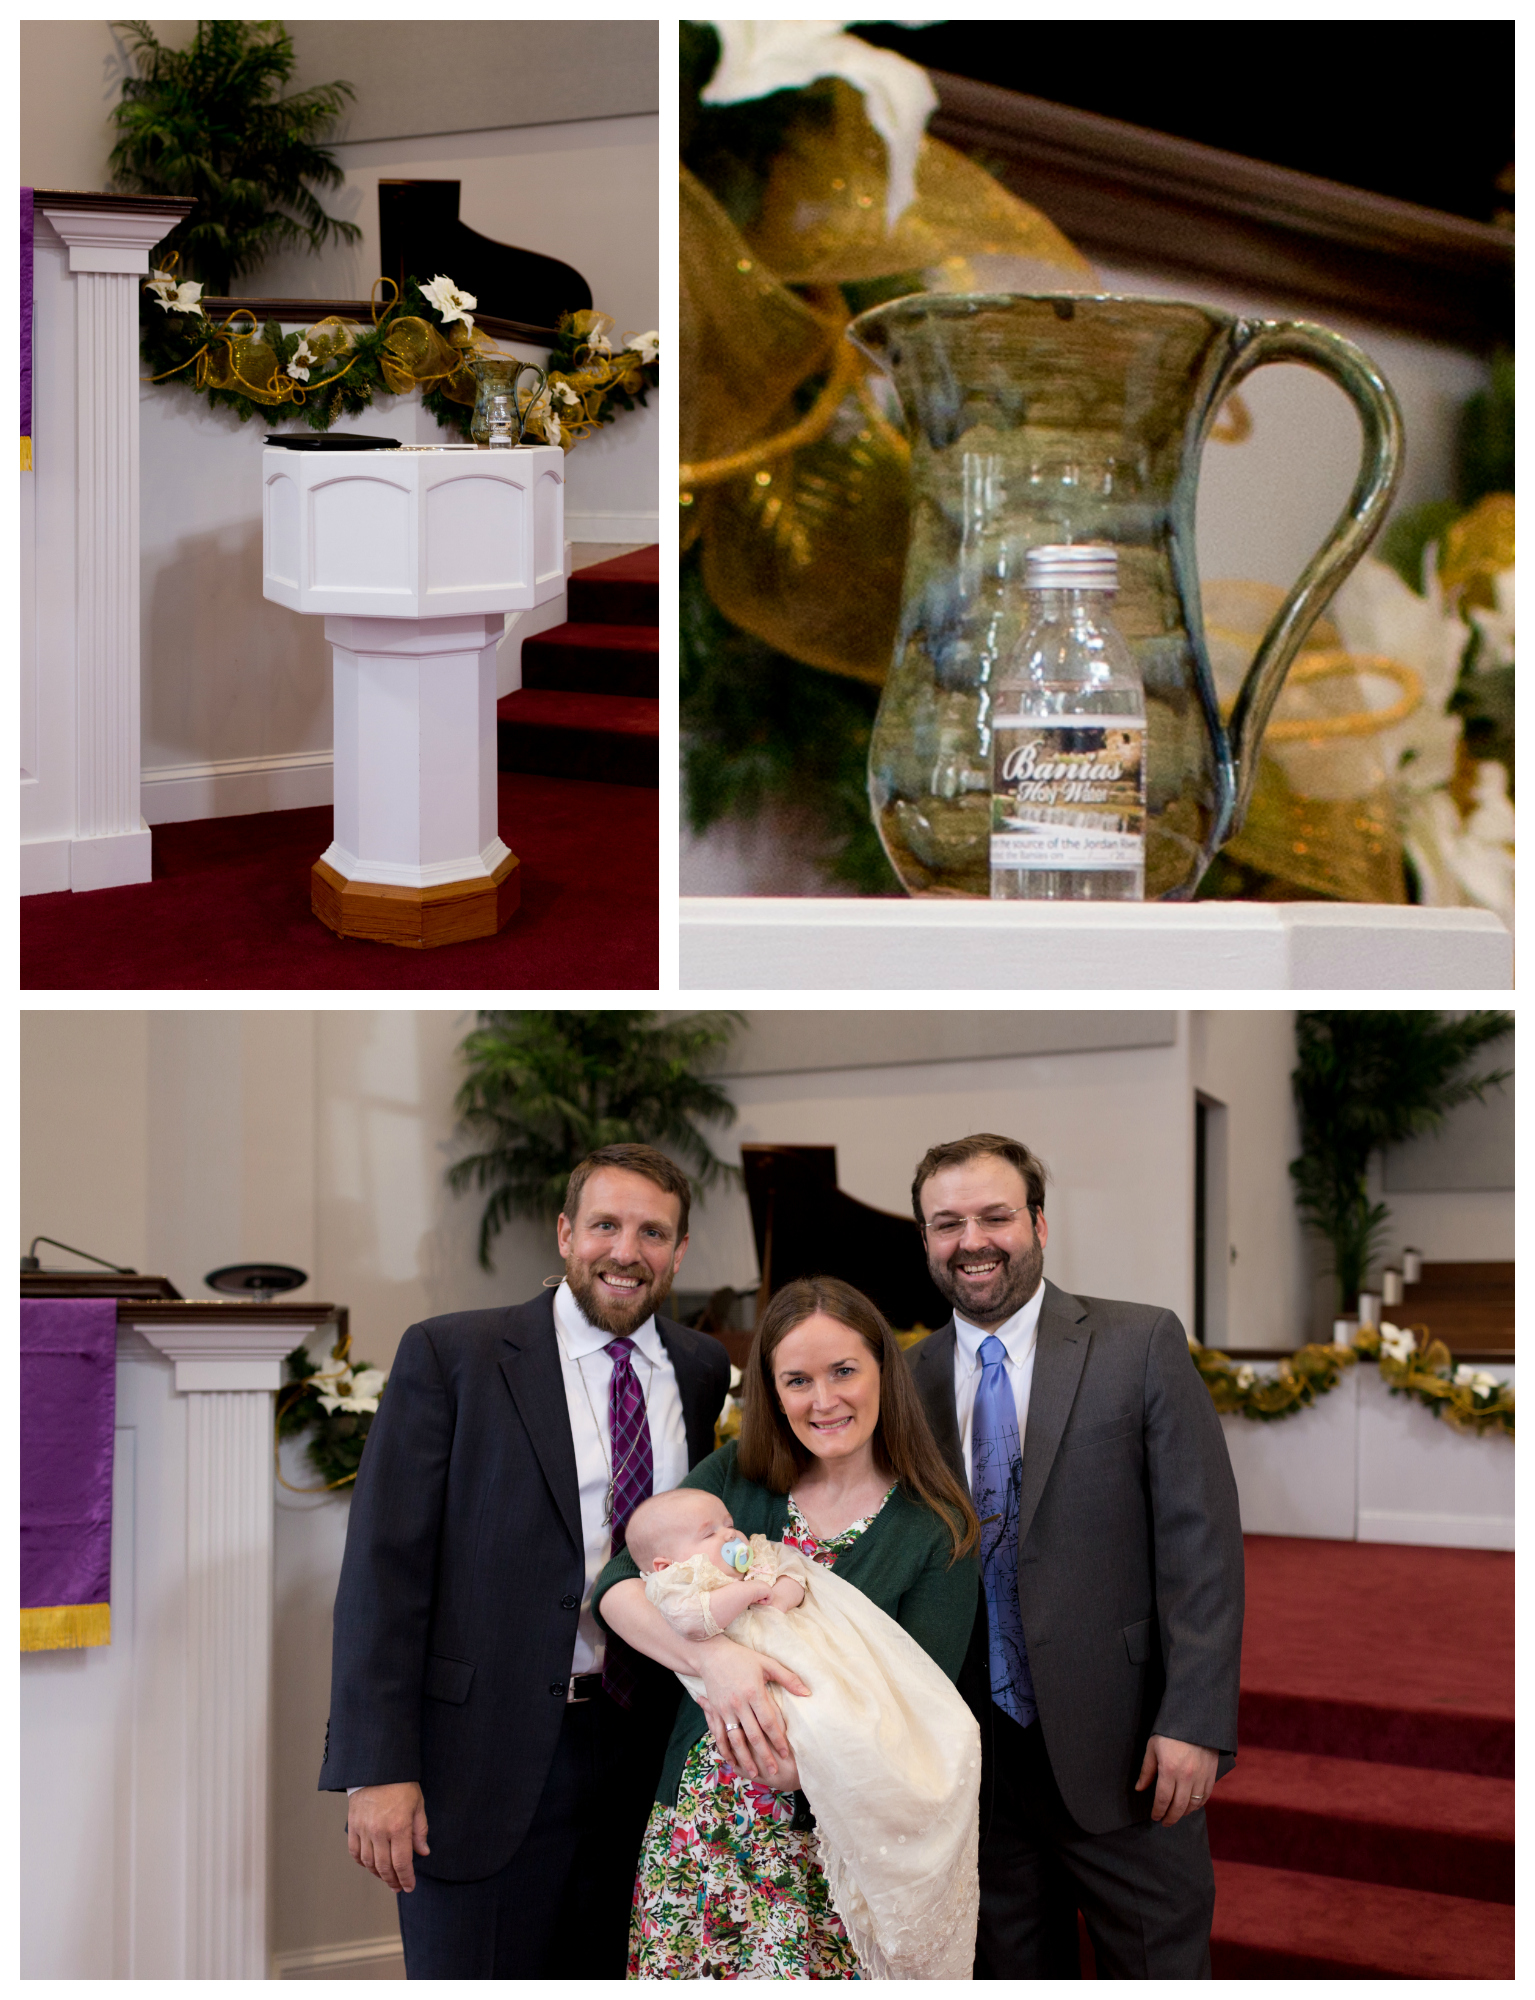 infant baptism at First Presbyterian Church in Ocean Springs (baptismal font, water pitcher)